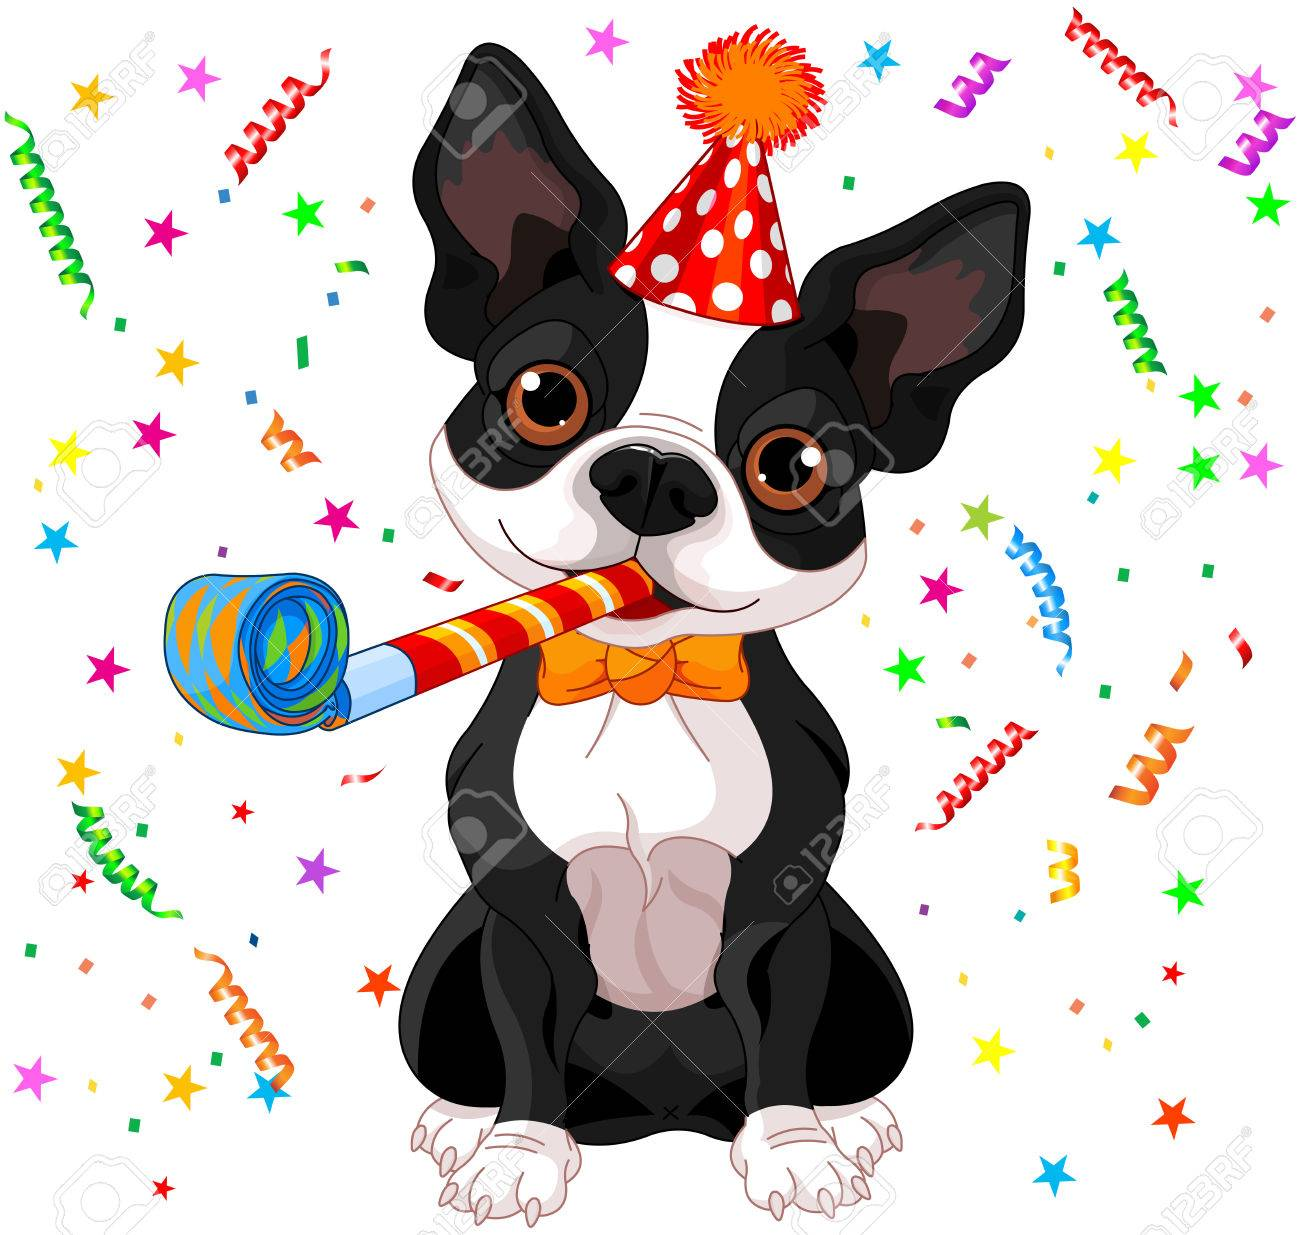 Aboiements: conseils? - Page 2 35588778-illustration-of-cute-boston-terrier-celebrating